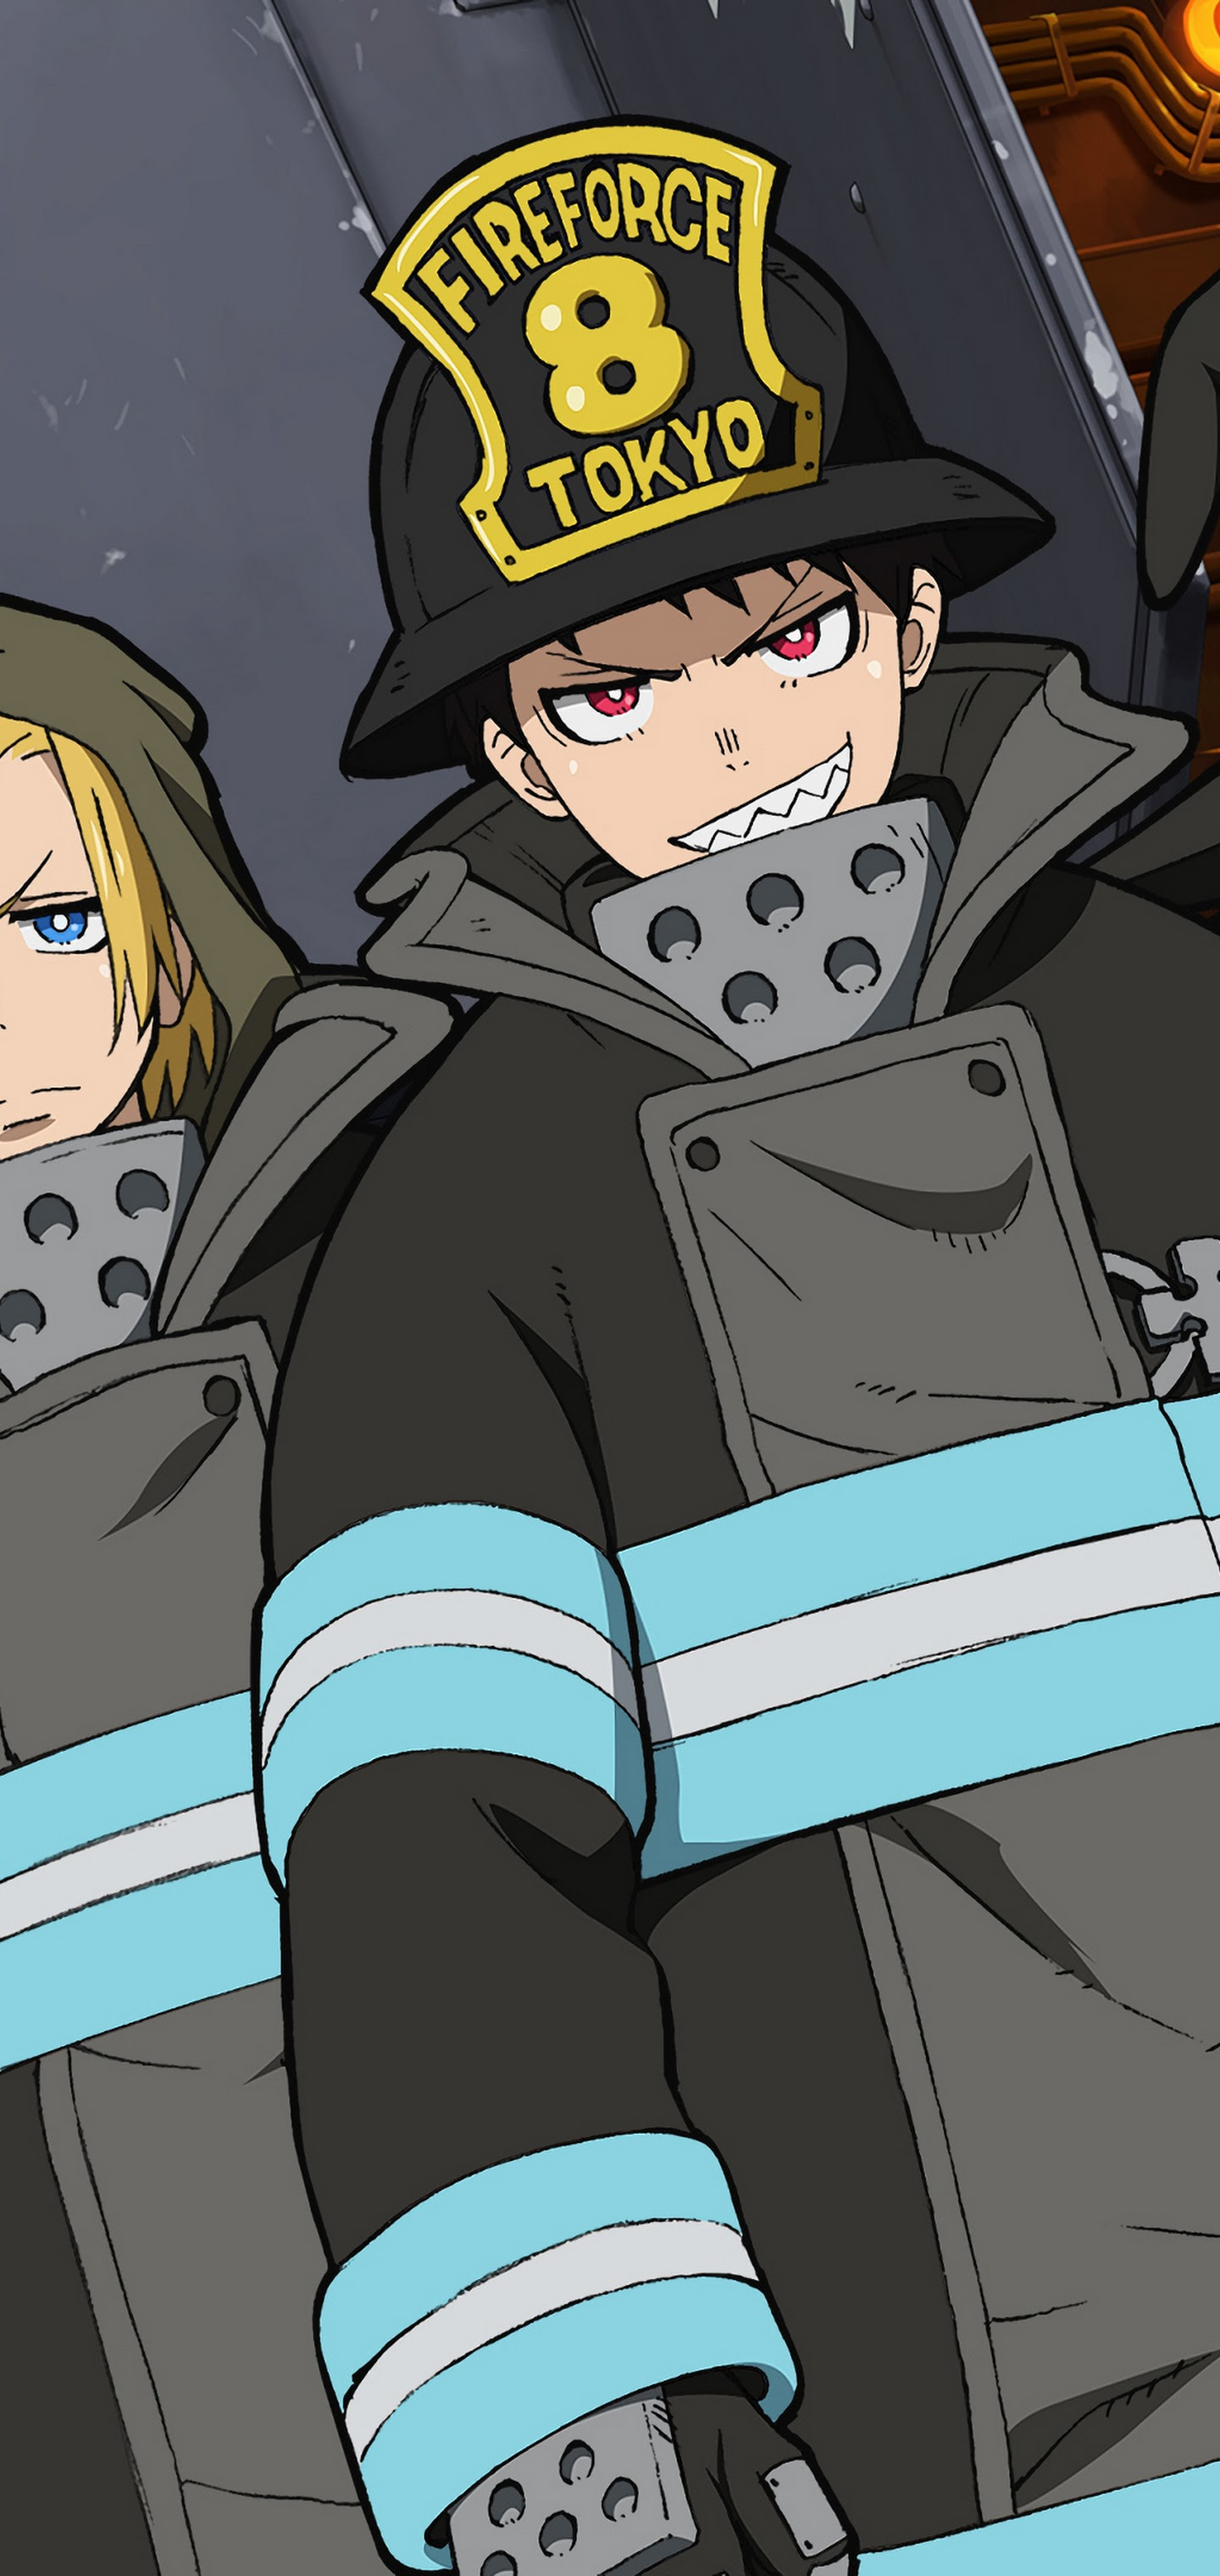 Fire Force Characters Special Fire Force Company 8 4k Wallpaper 37 You can also upload and share your favorite fire force wallpapers. fire force characters special fire